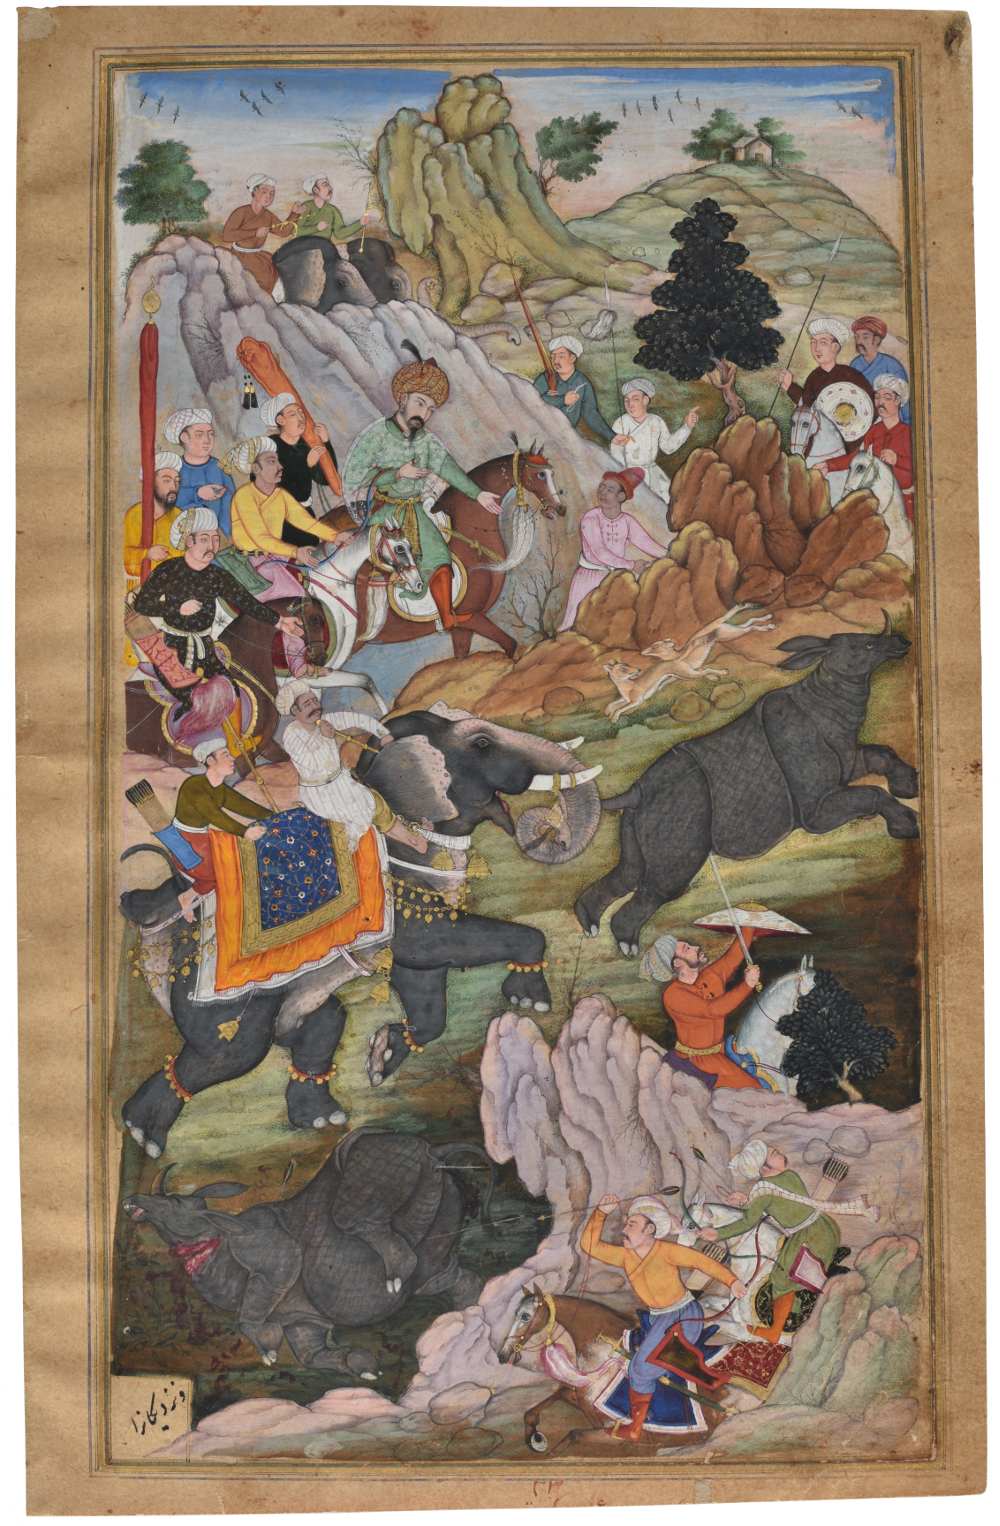 Two folios from the Baburnama:Folio two  - Ink and opaque watercolour on paper, mineral pigmentAbout AD 1598Probably Agra, Uttar Pradesh, IndiaNational Museum, New DelhiThis painting shows Babur hunting rhinoceros near Peshawar on his fifth expedition in 1525. This provided the opportunity for Babur to satisfy his curiosity about what happens when an elephant and a rhino come face to face. He noted that the rhino retreated and that his young son Humayun who had never seen a rhino before was much entertained. The account comes from Babur's autobiography – the Baburnama, but the paintings were made in the reign of his grandson Akbar (1556–1605).